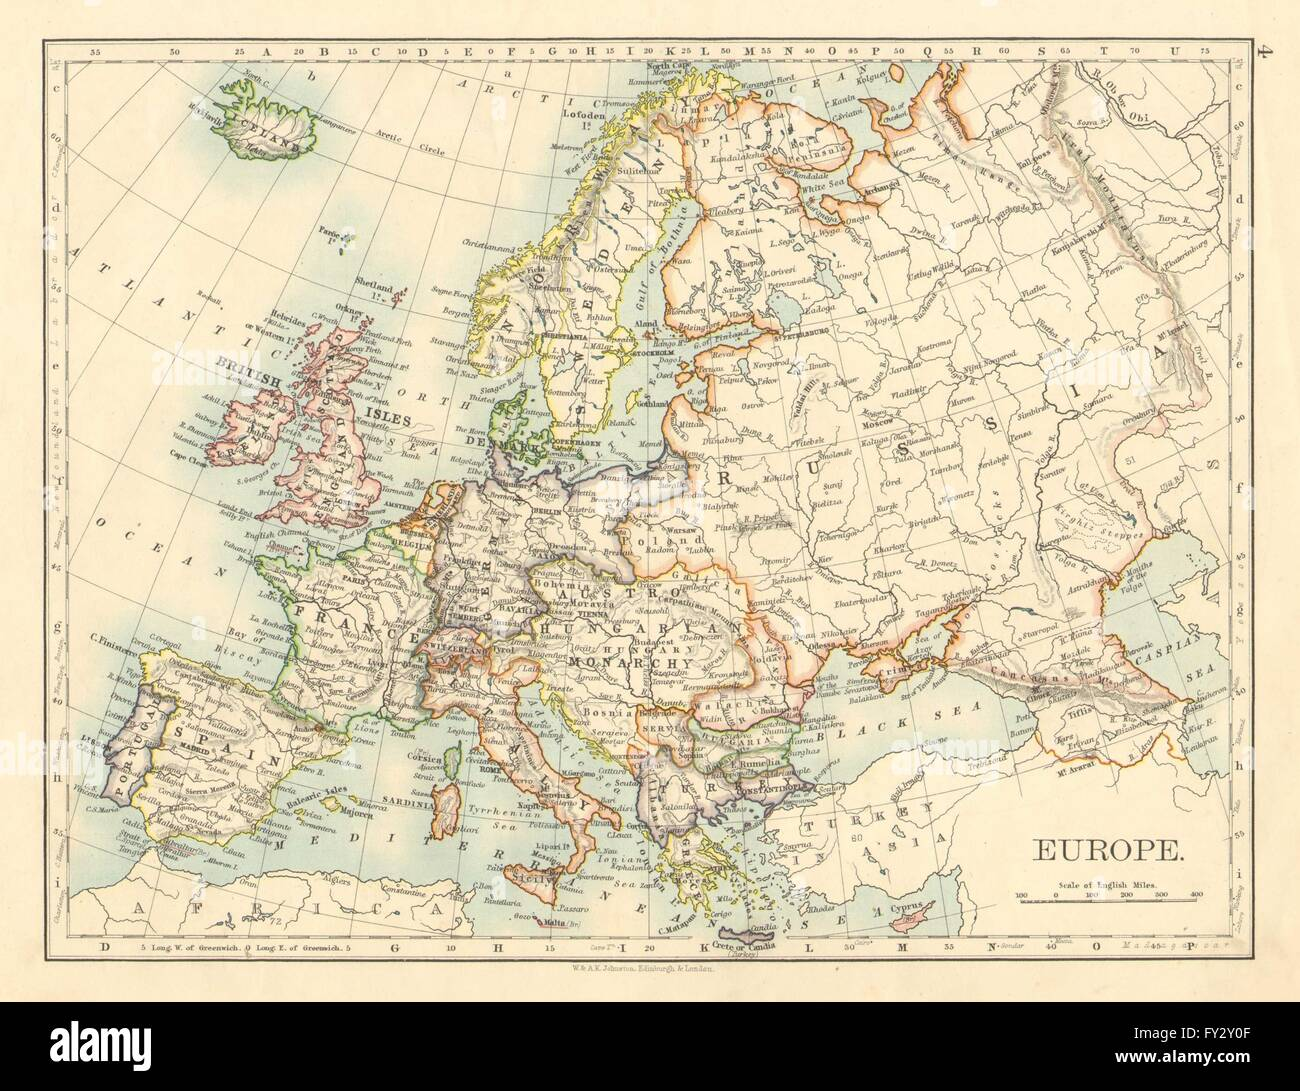 EUROPE POLITICAL AustriaHungary United Sweden Norway - Norway map in english